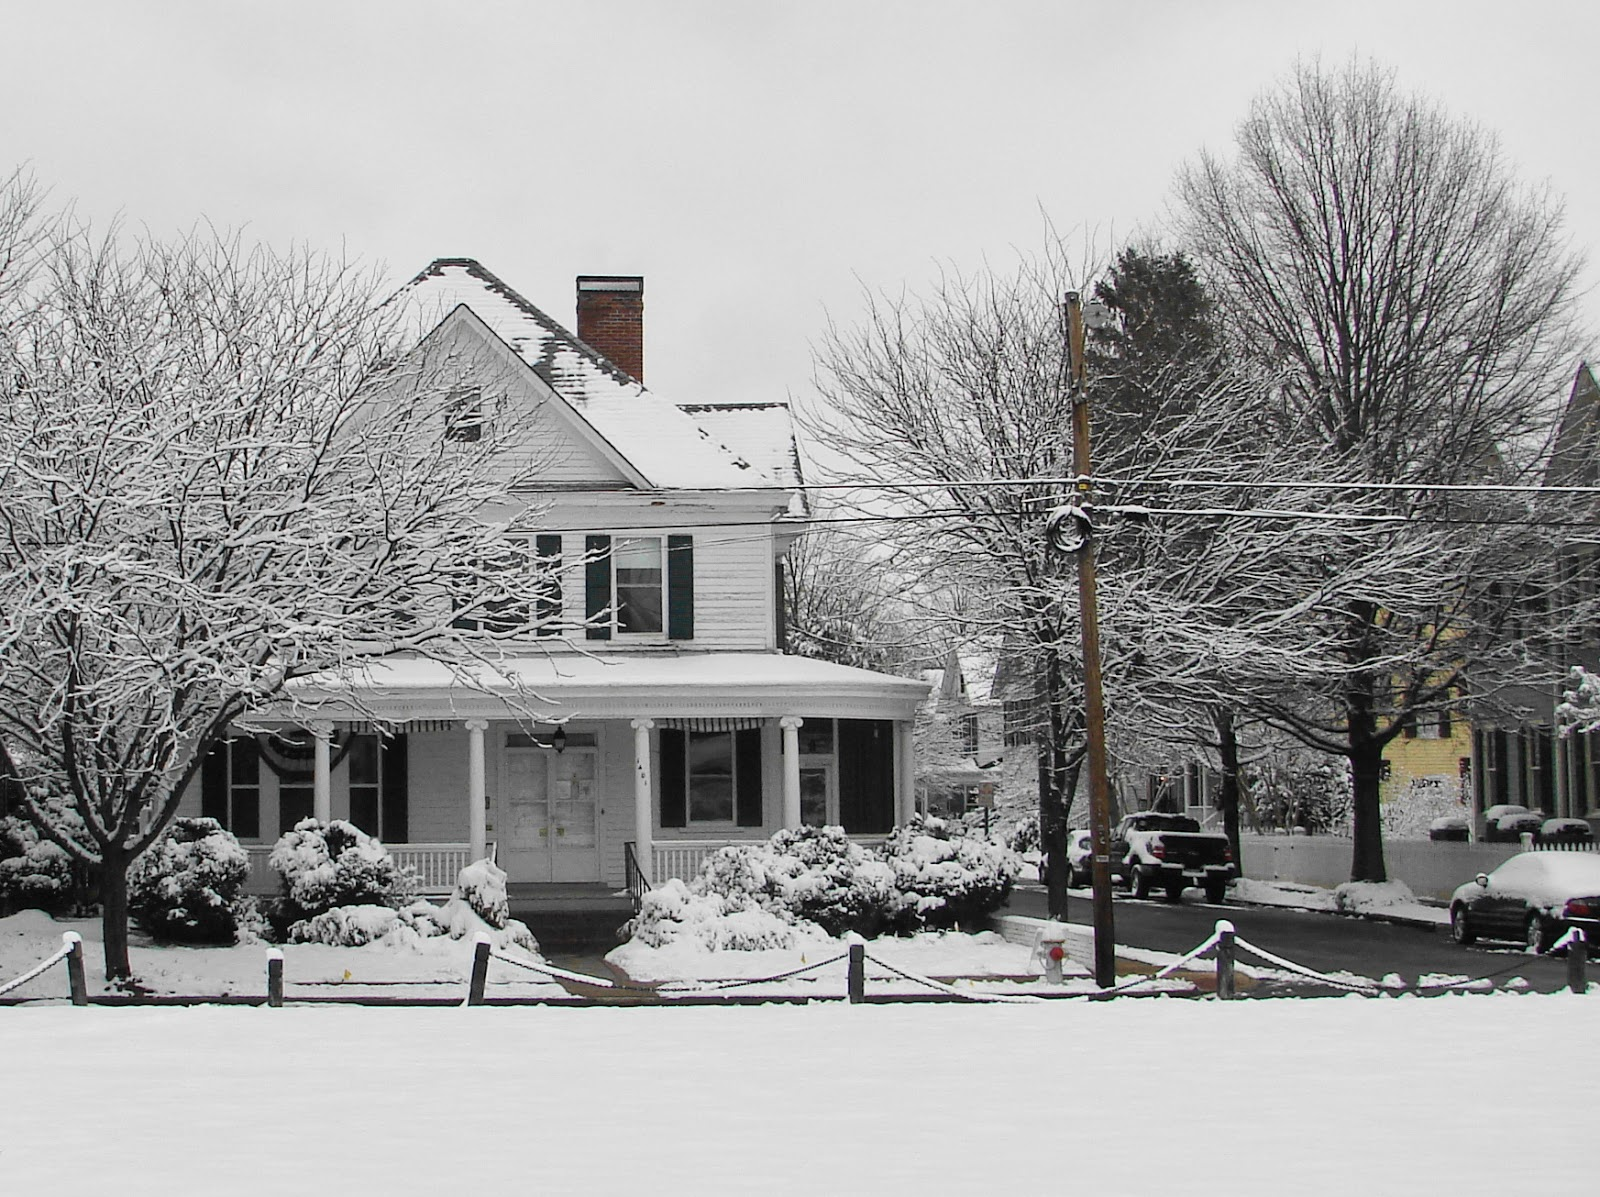 snow covered house - photo #16